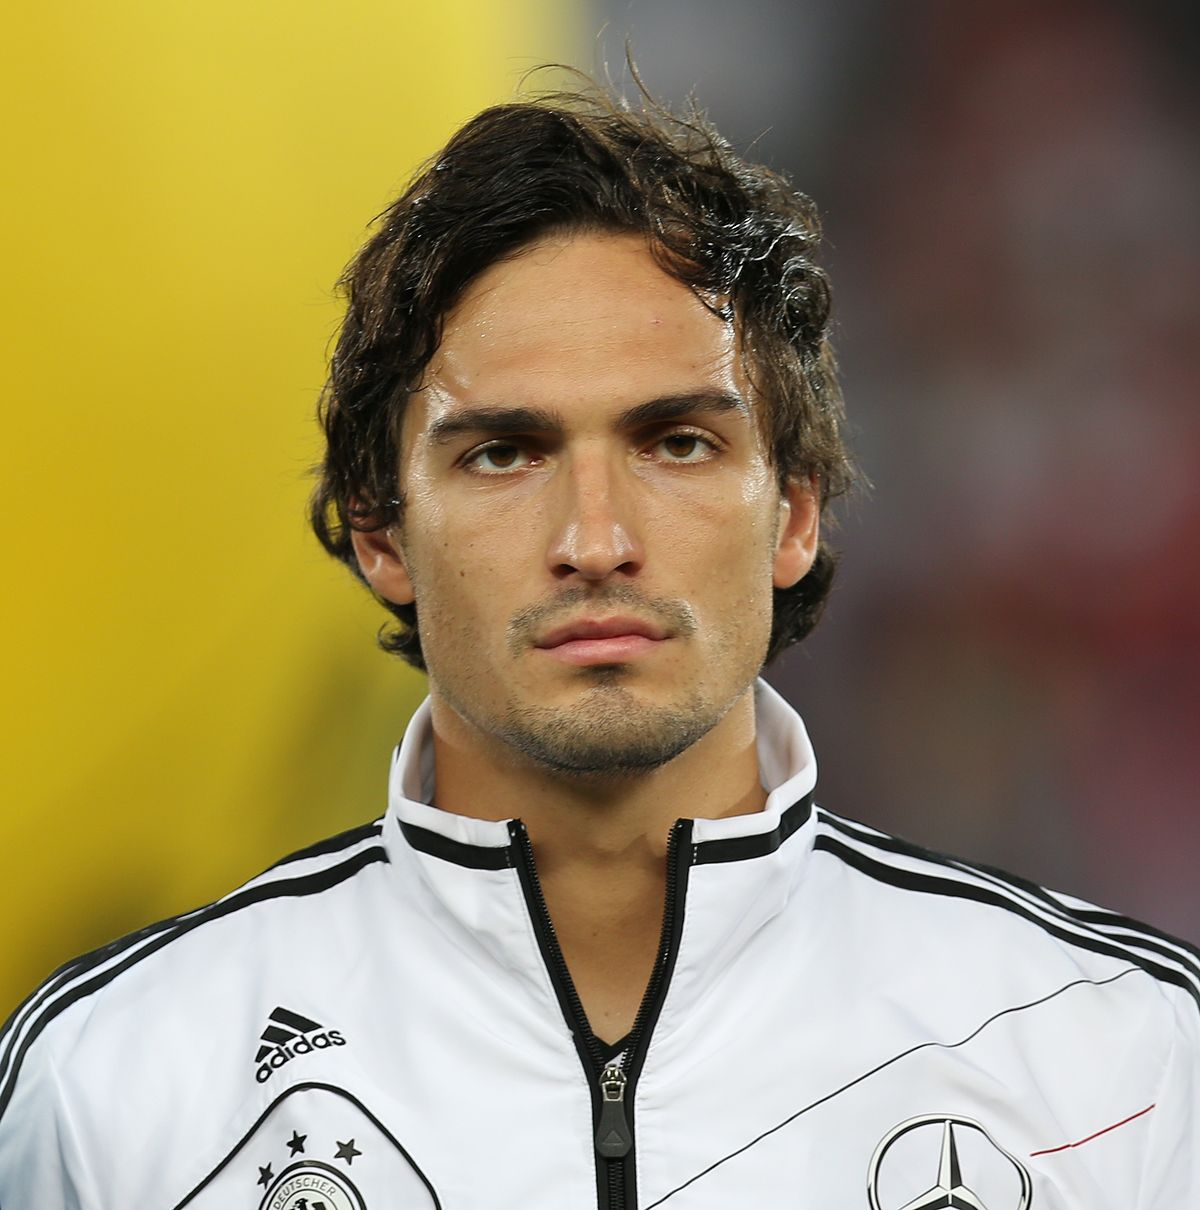 1200px-FIFA_WC-qualification_2014_-_Austria_vs._Germany_2012-09-11_-_Mats_Hummels_01